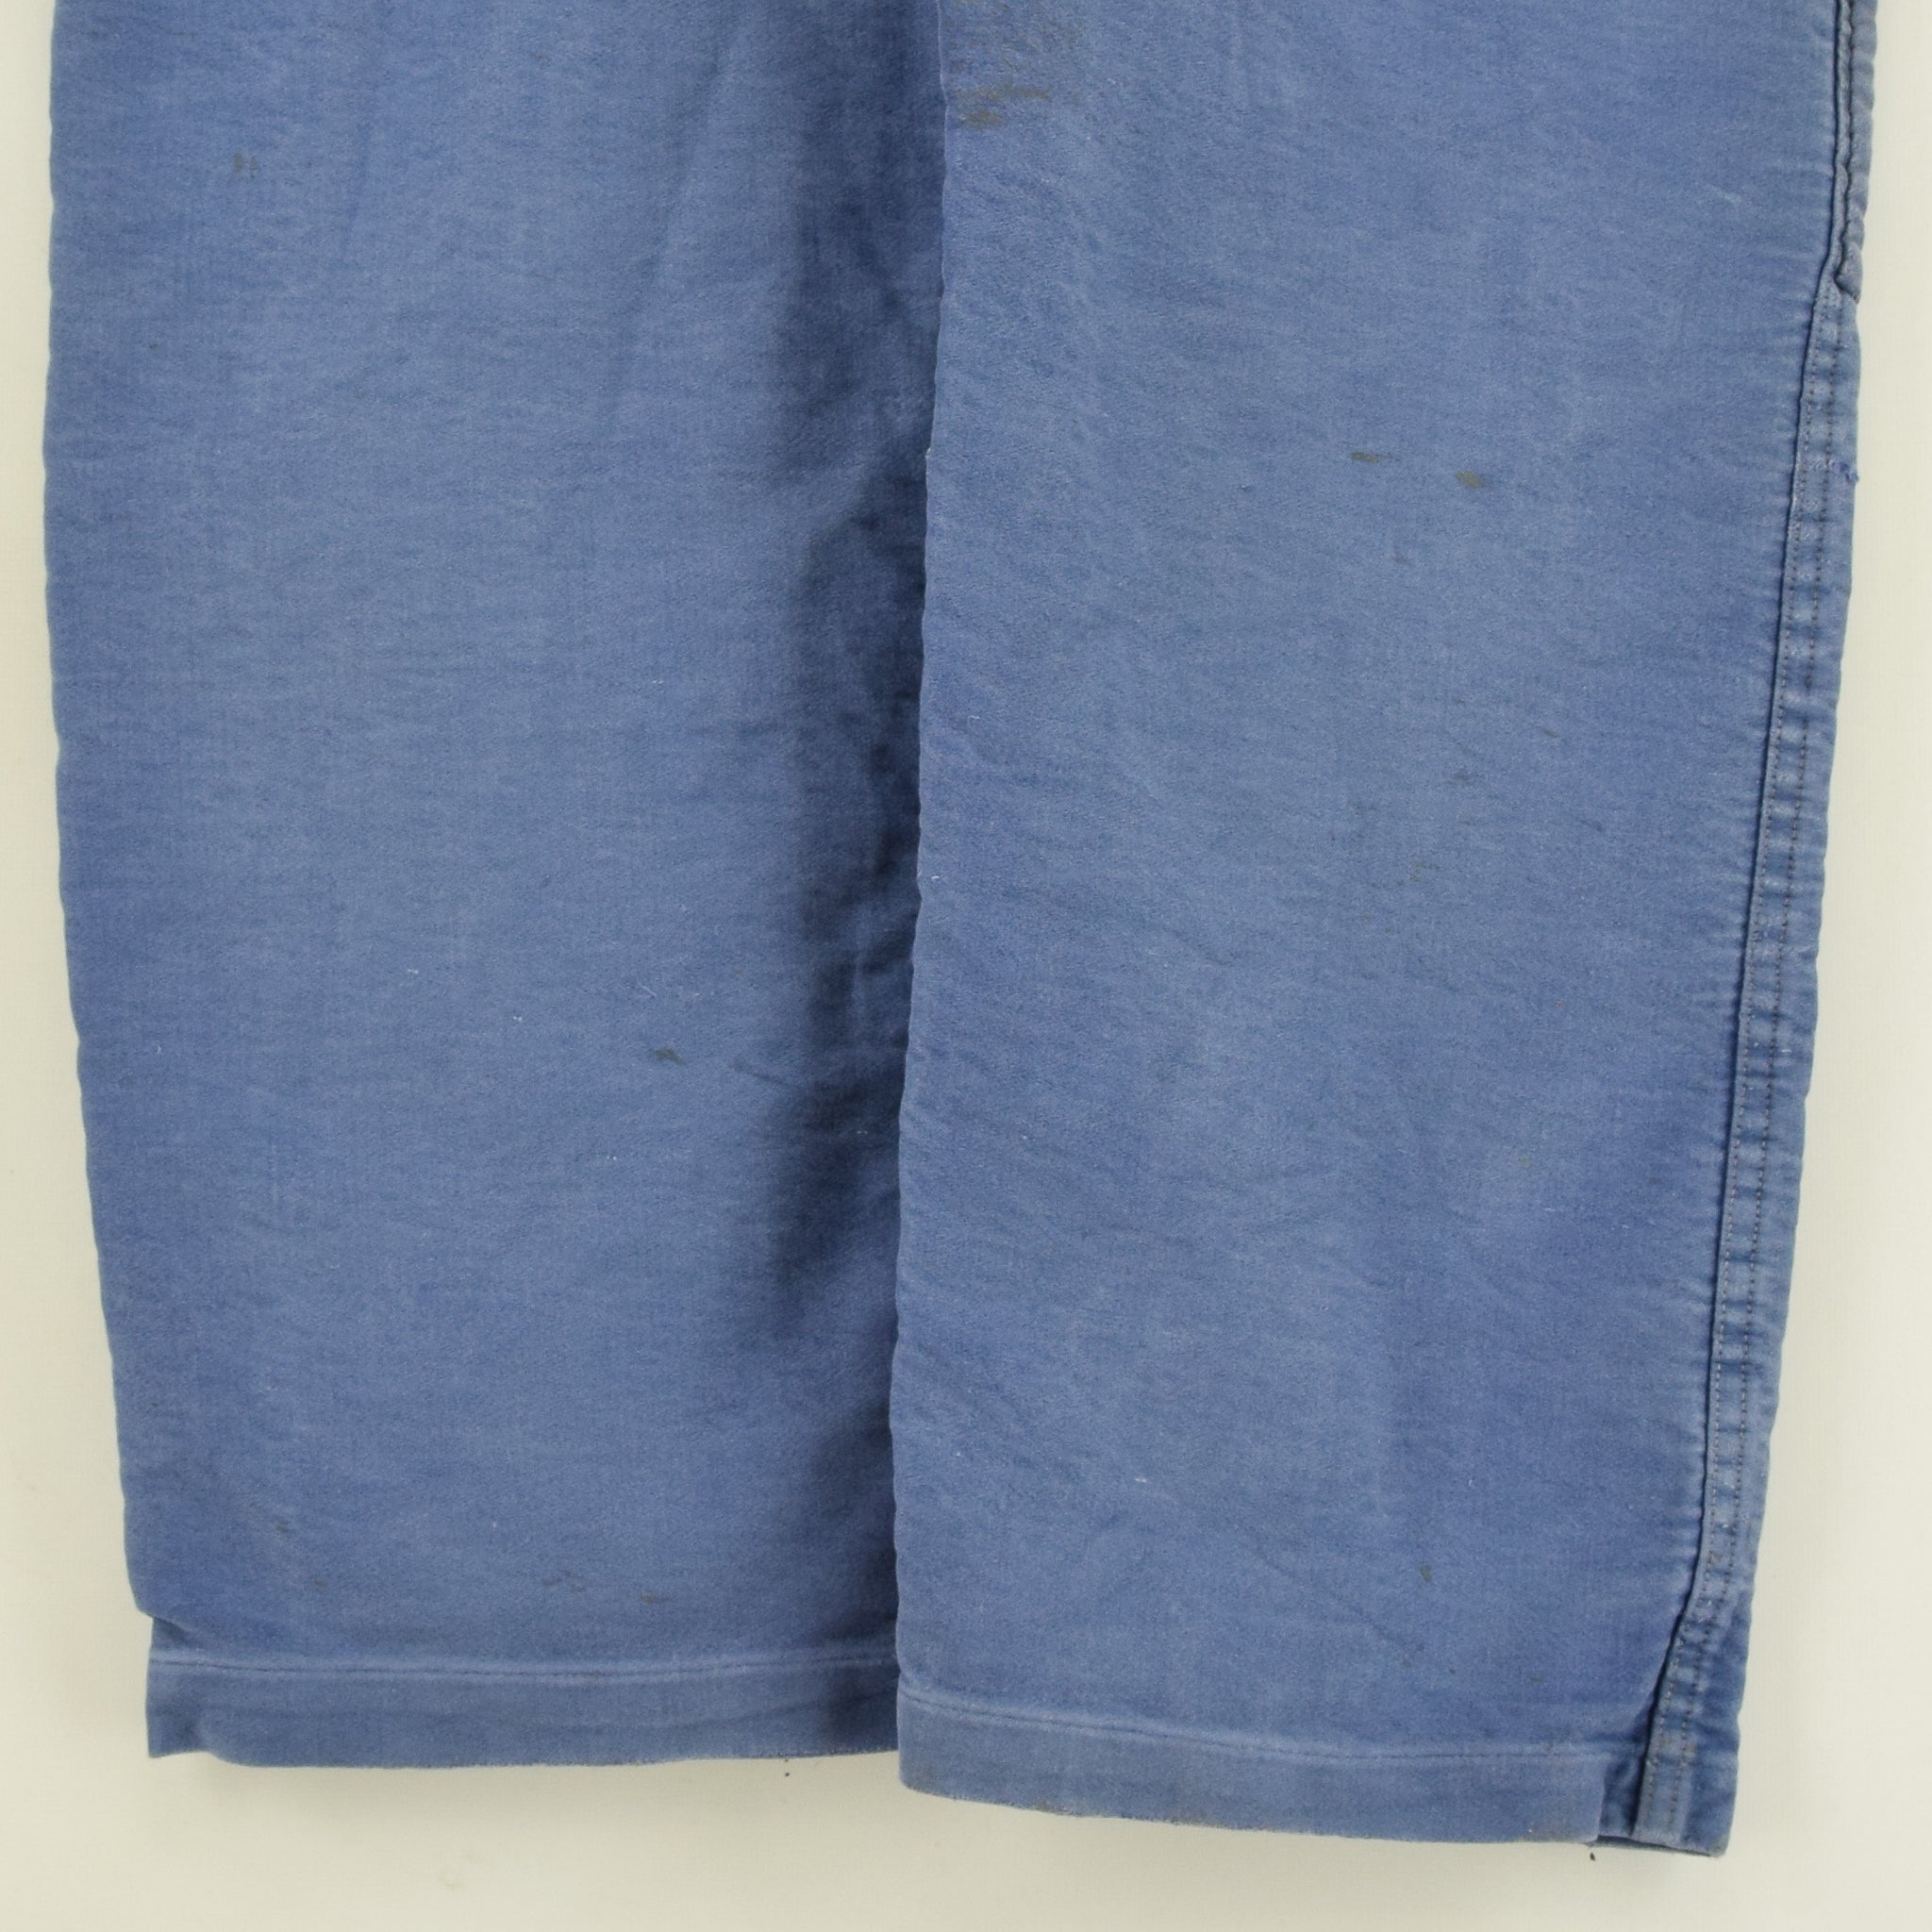 Vintage Distressed Blue French Moleskin Workwear Dungarees Trousers S / M back legs